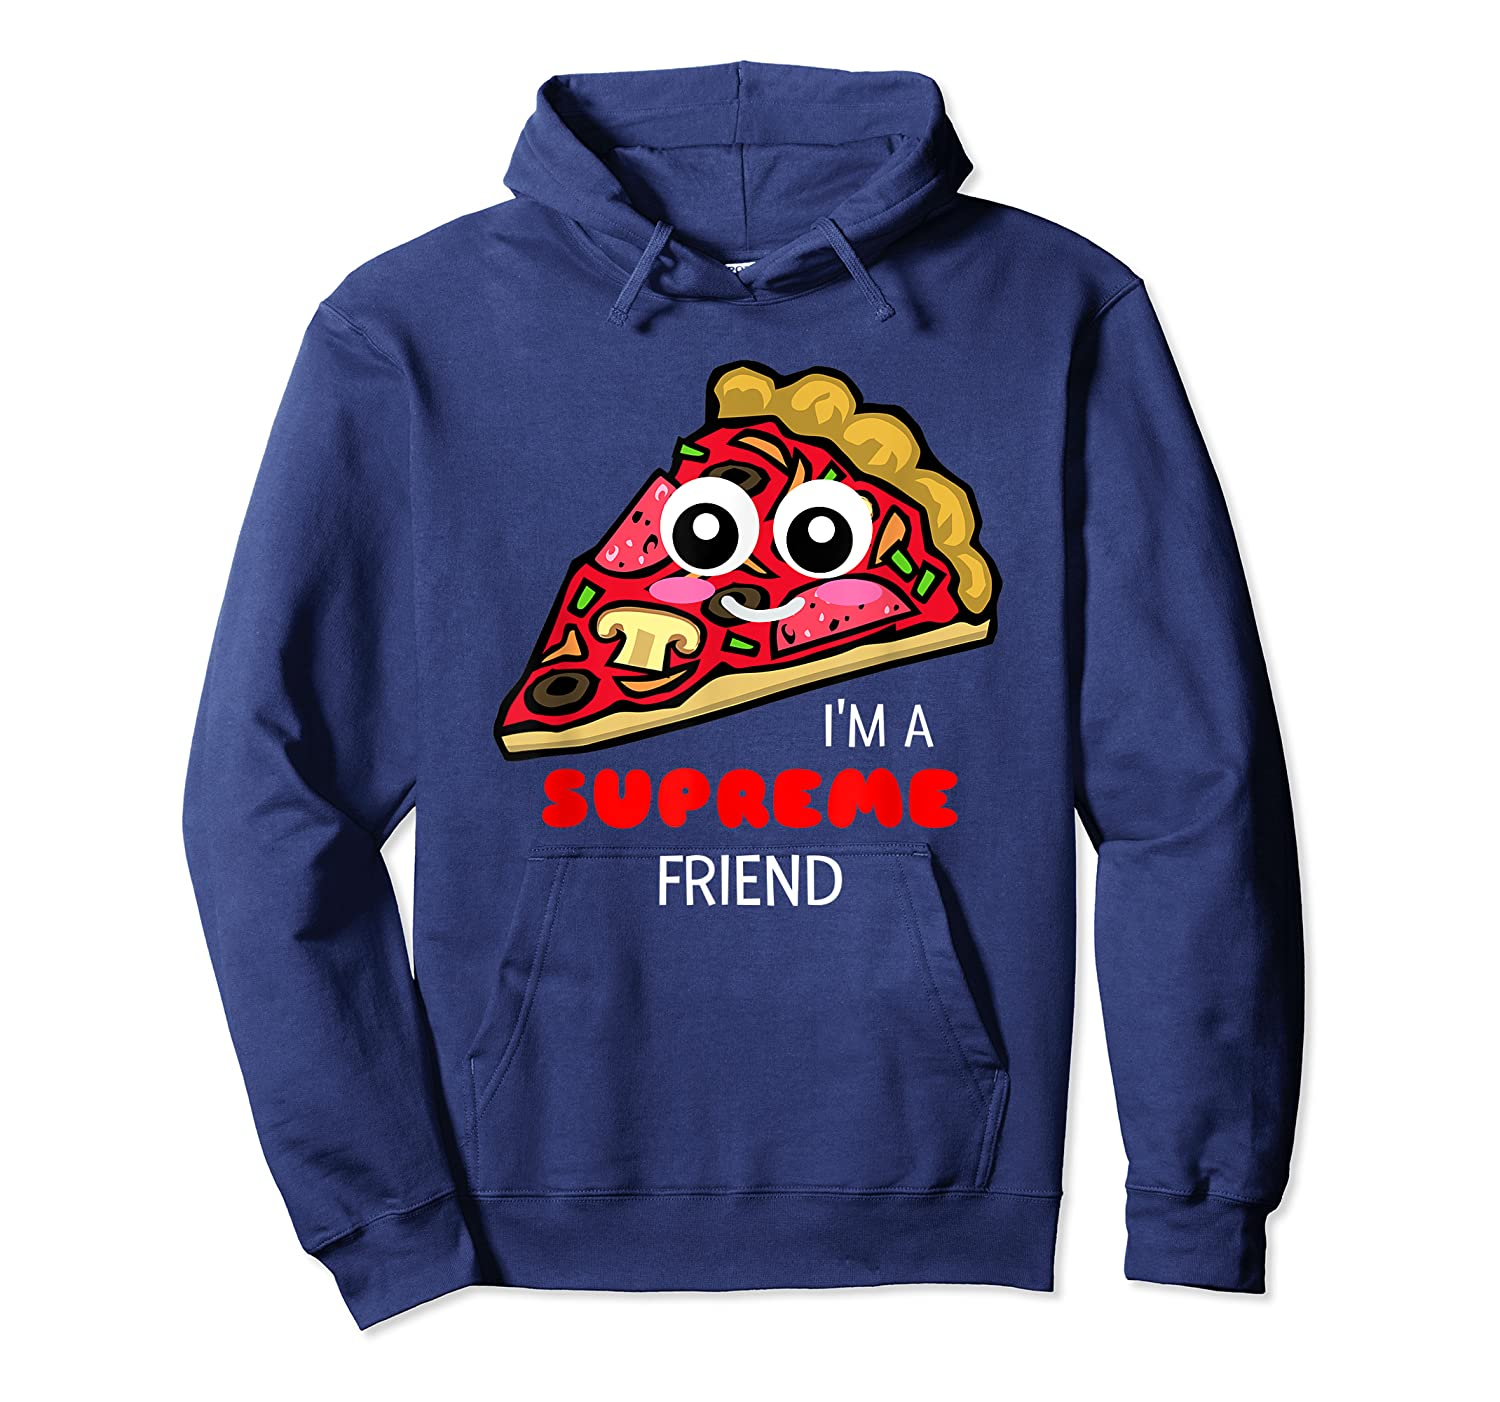 I'm A Supreme Friend - Funny Pizza Pun Shirt Unisex Pullover Hoodie